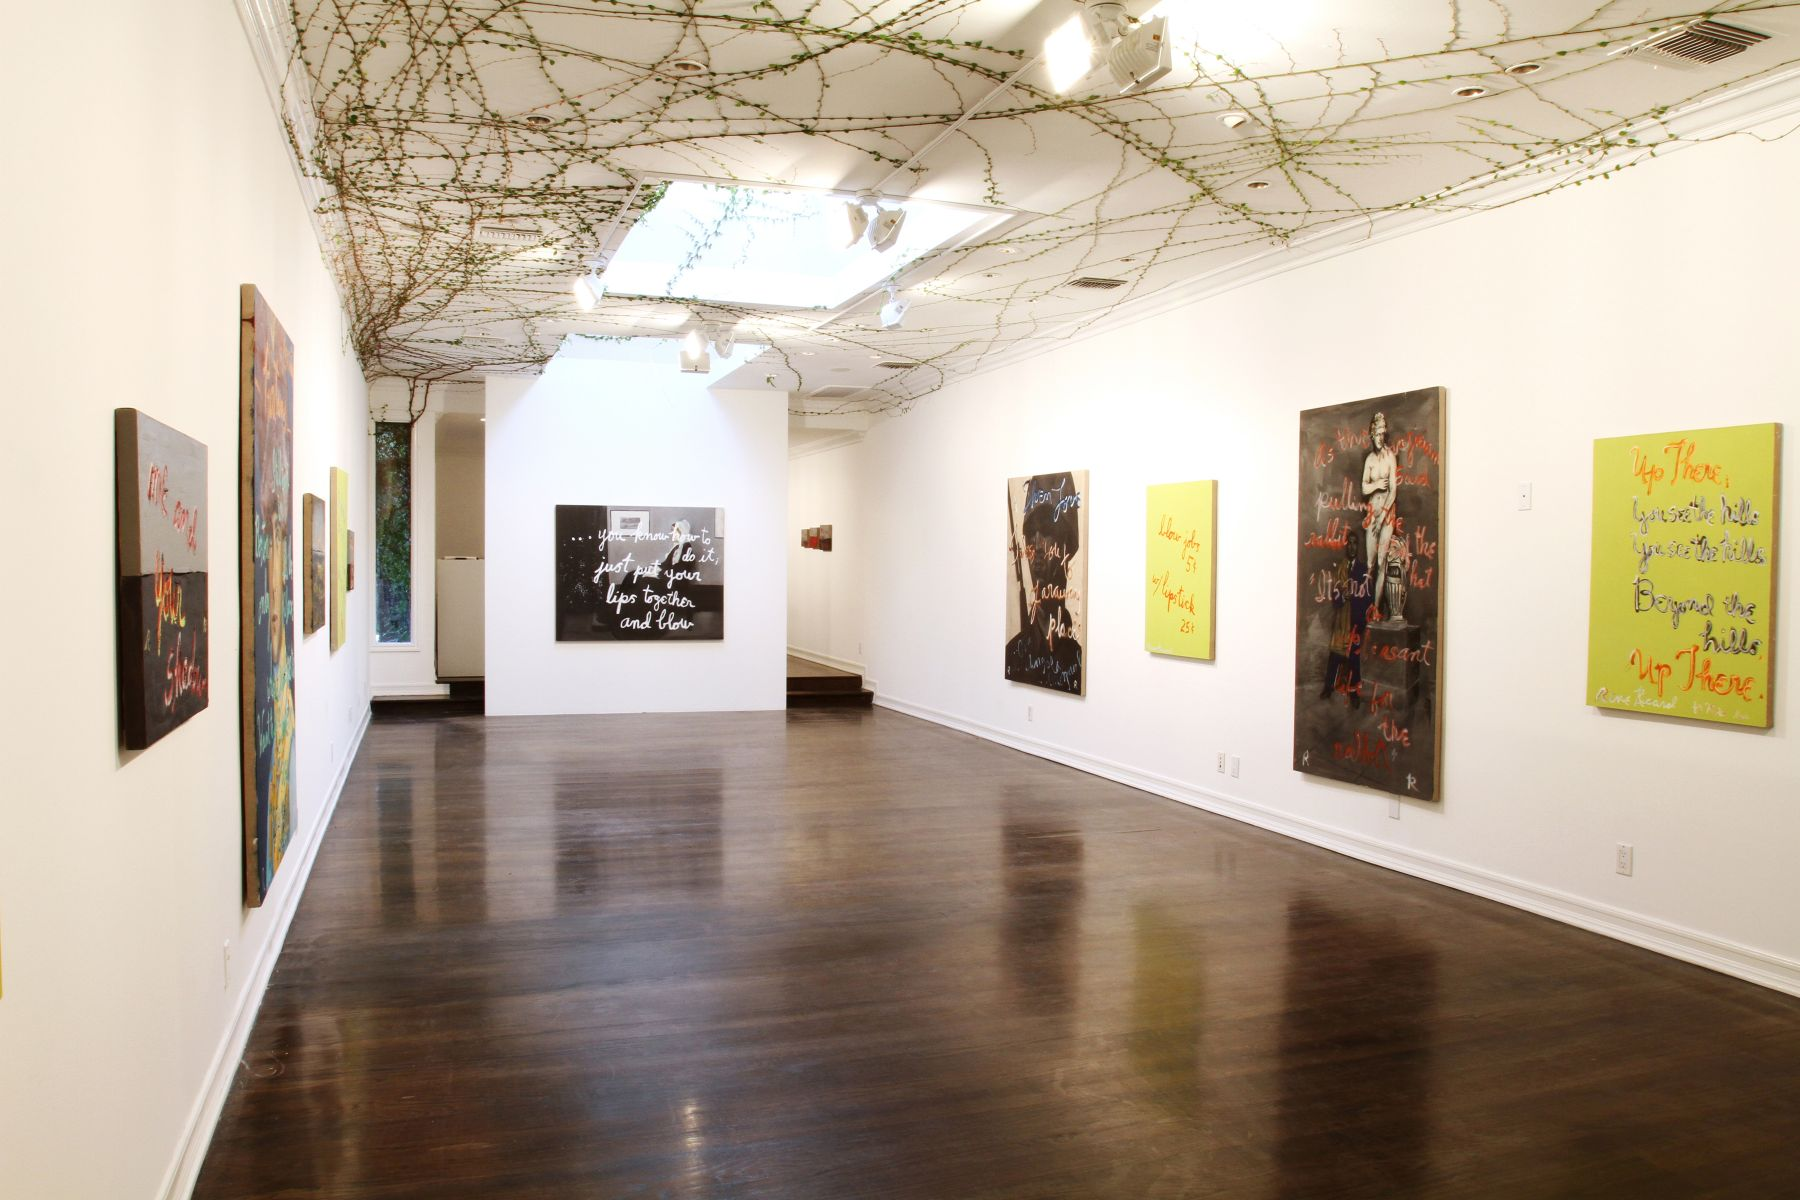 Installation view, Rene Ricard: Go Mae West, Young Man, Los Angeles, 2012